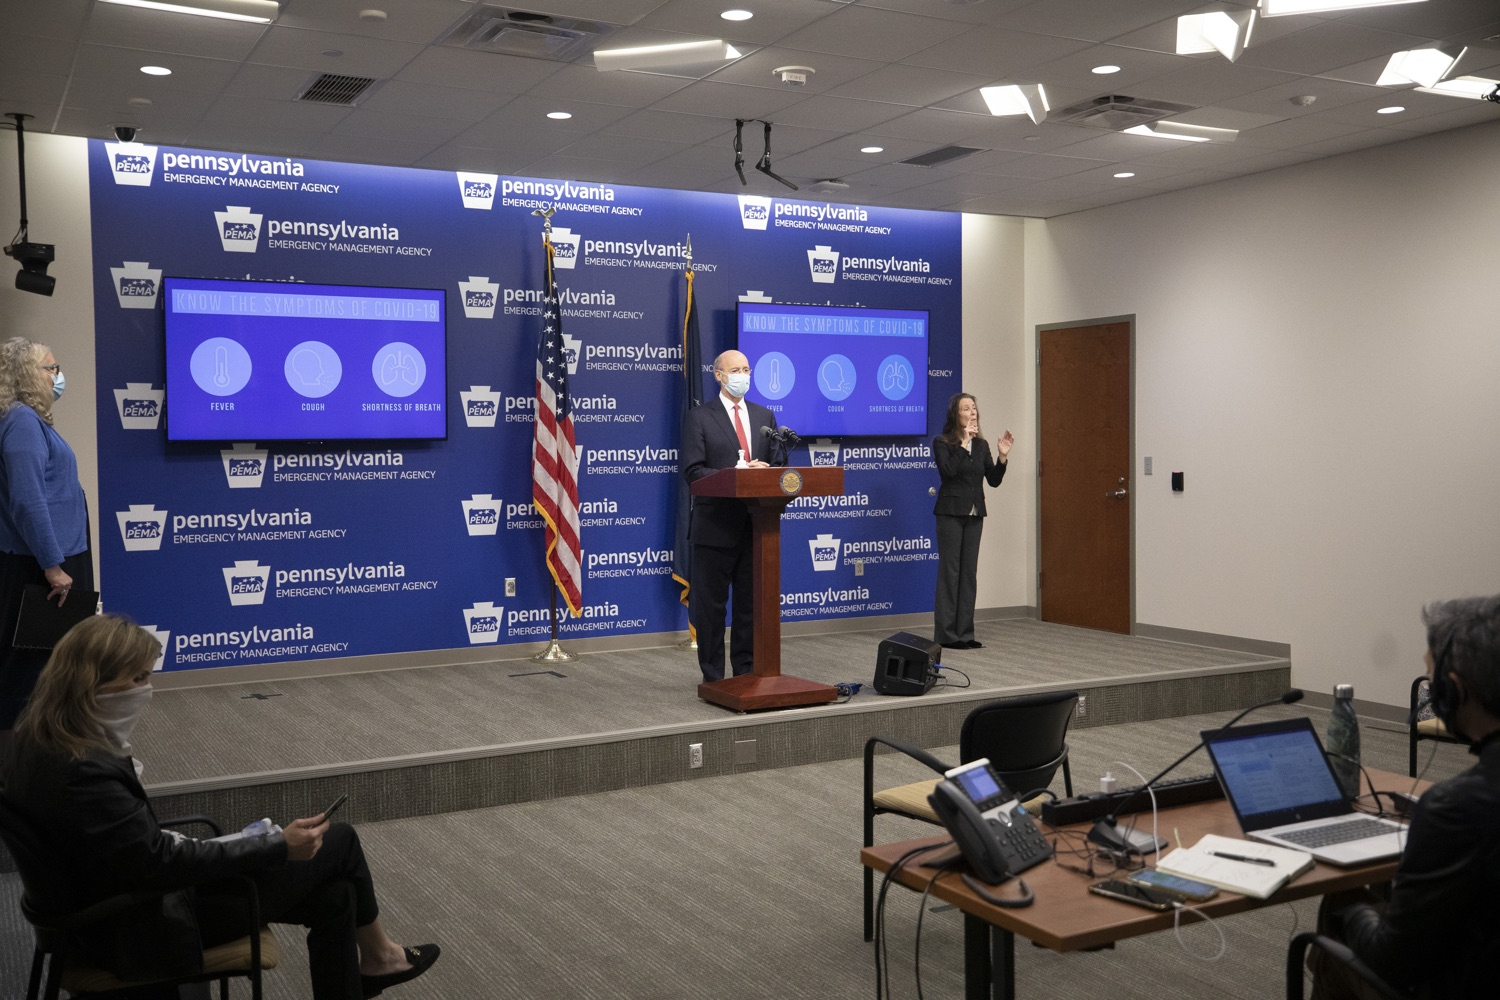 "<a href=""https://filesource.wostreaming.net/commonwealthofpa/photo/18405_gov_covidUpdate_dz_013.jpg"" target=""_blank"">⇣ Download Photo<br></a>Pennsylvania Governor Tom Wolf answers questions from the press.  With new modeling projecting 22,000 new COVID-19 cases per day in Pennsylvania in December, Governor Tom Wolf and Secretary of Health Dr. Rachel Levine today announced new targeted mitigation measures to help stop the spread during this critical time. These include a robust enforcement plan targeted at chronic violators along with an effort to ensure schools are safe and in compliance with COVID safety plans. The administration is also encouraging Pennsylvanians to limit unnecessary travel and stay at home.  Harrisburg, Pa. November 23, 2020"